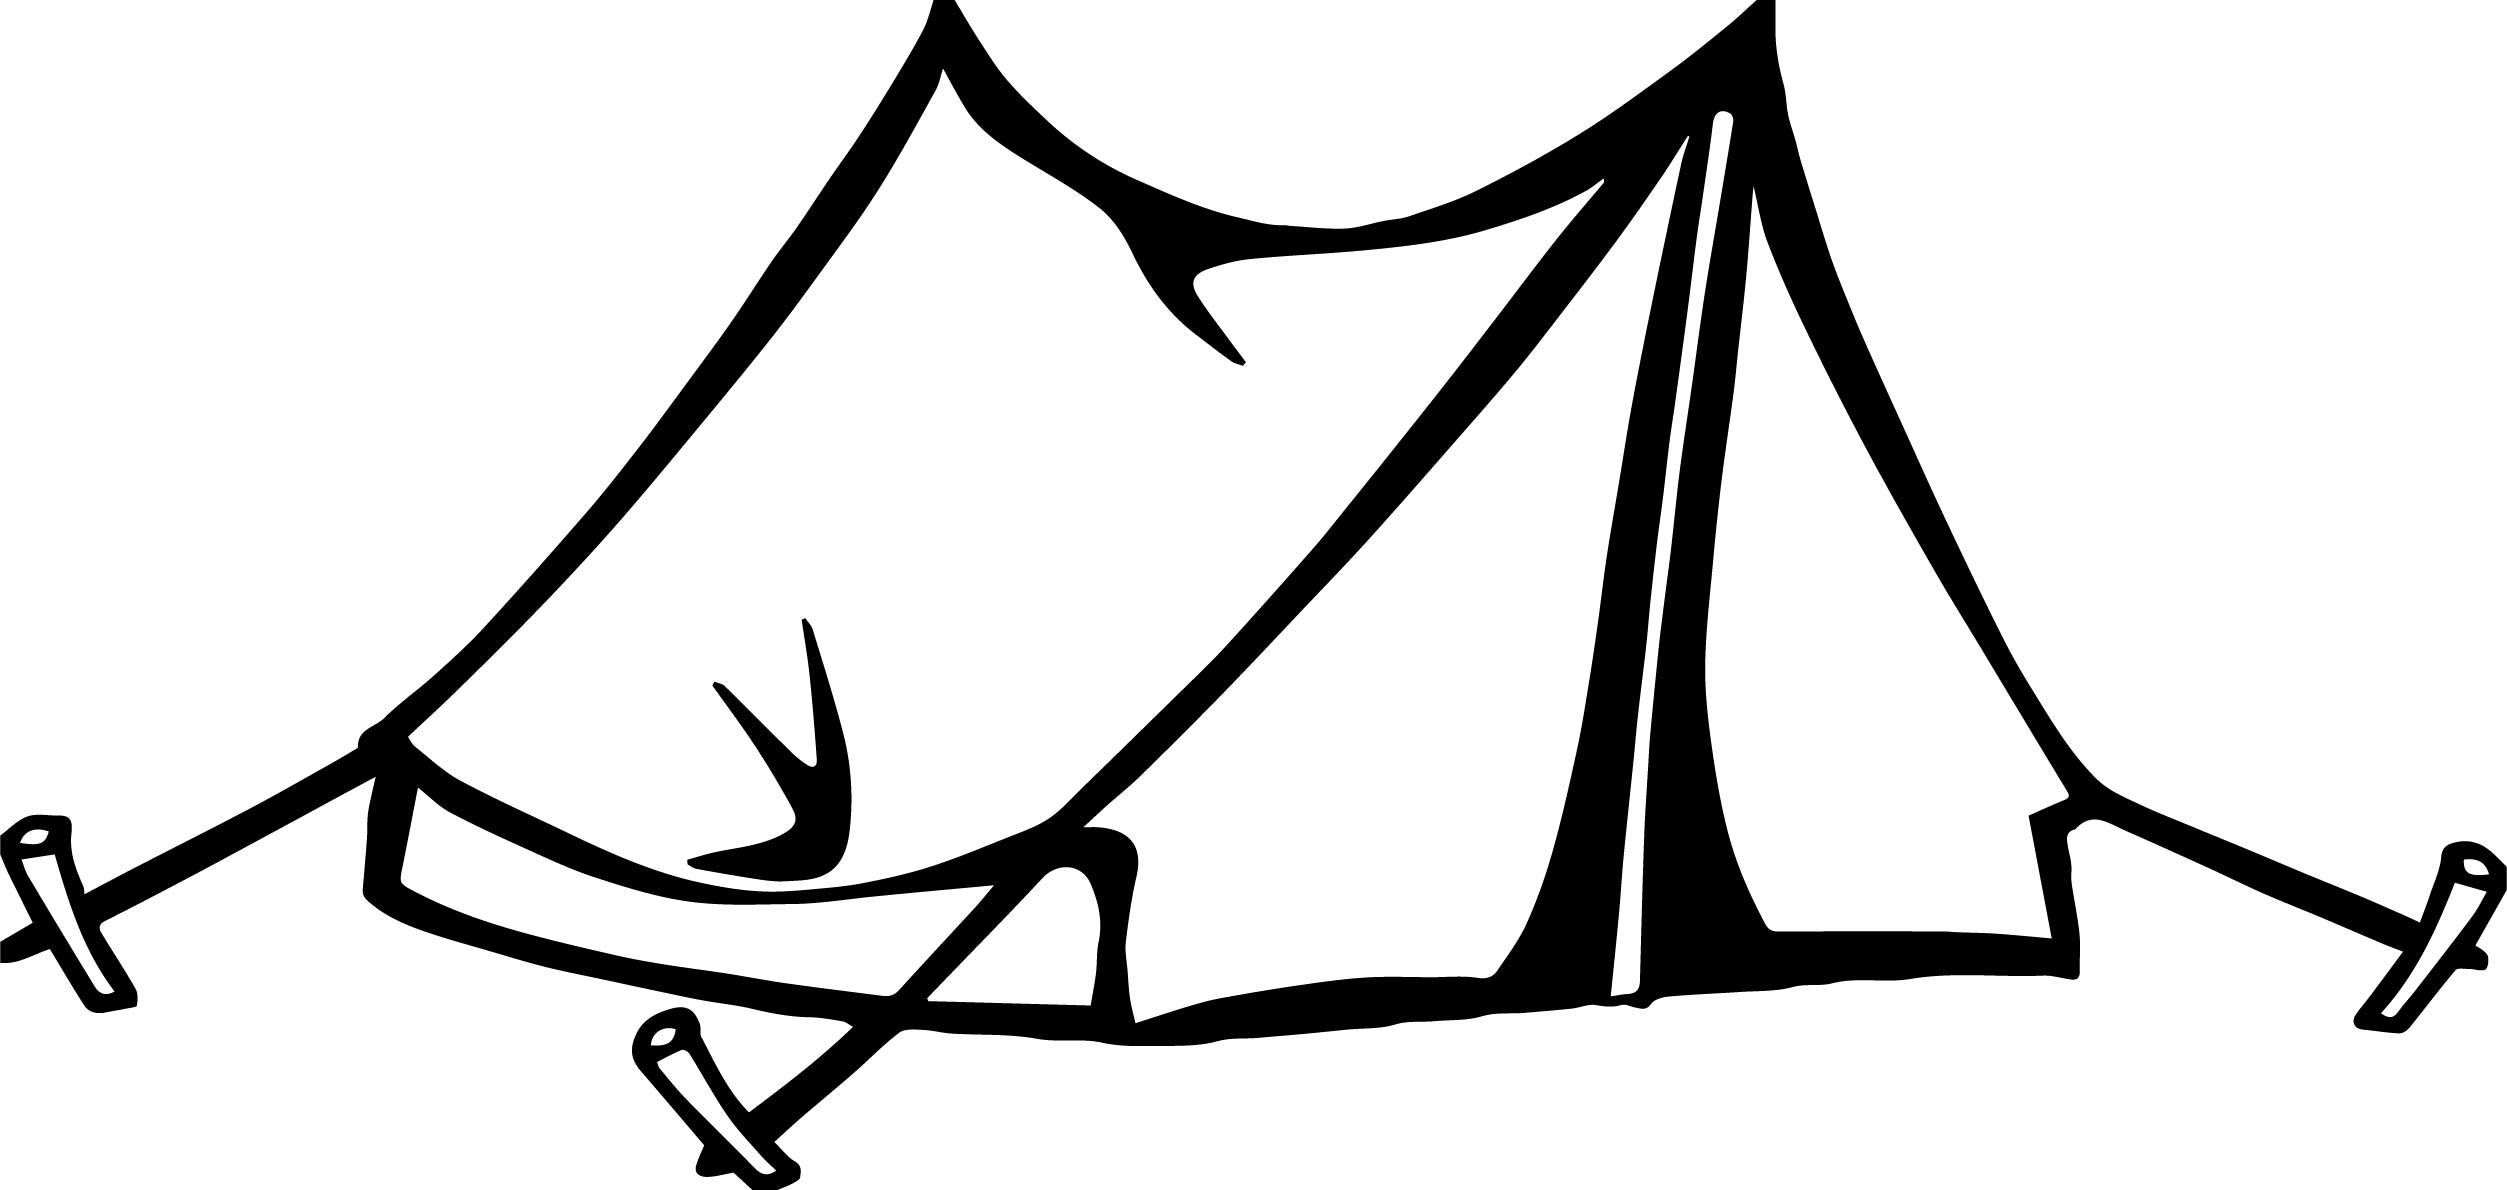 Tent Art Camping Coloring Page | Wecoloringpage.com